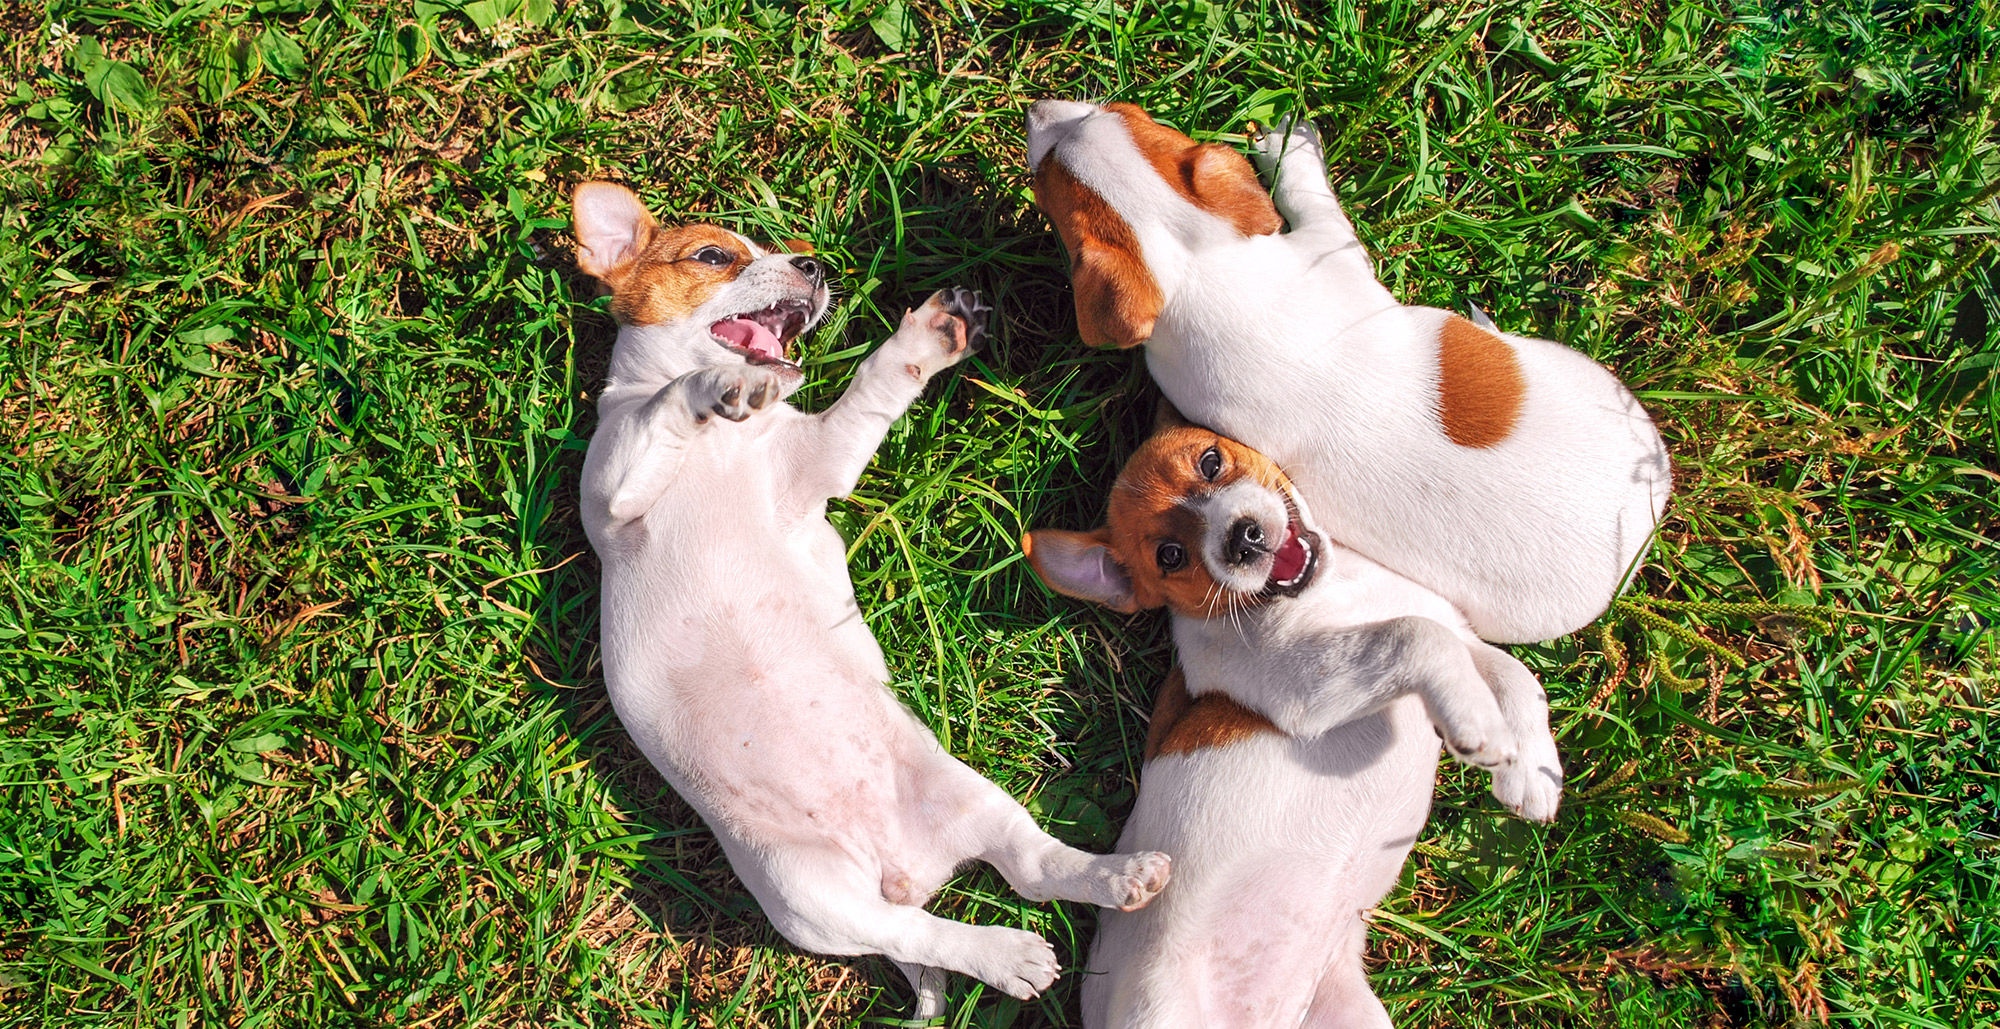 Puppies Laying in Grass